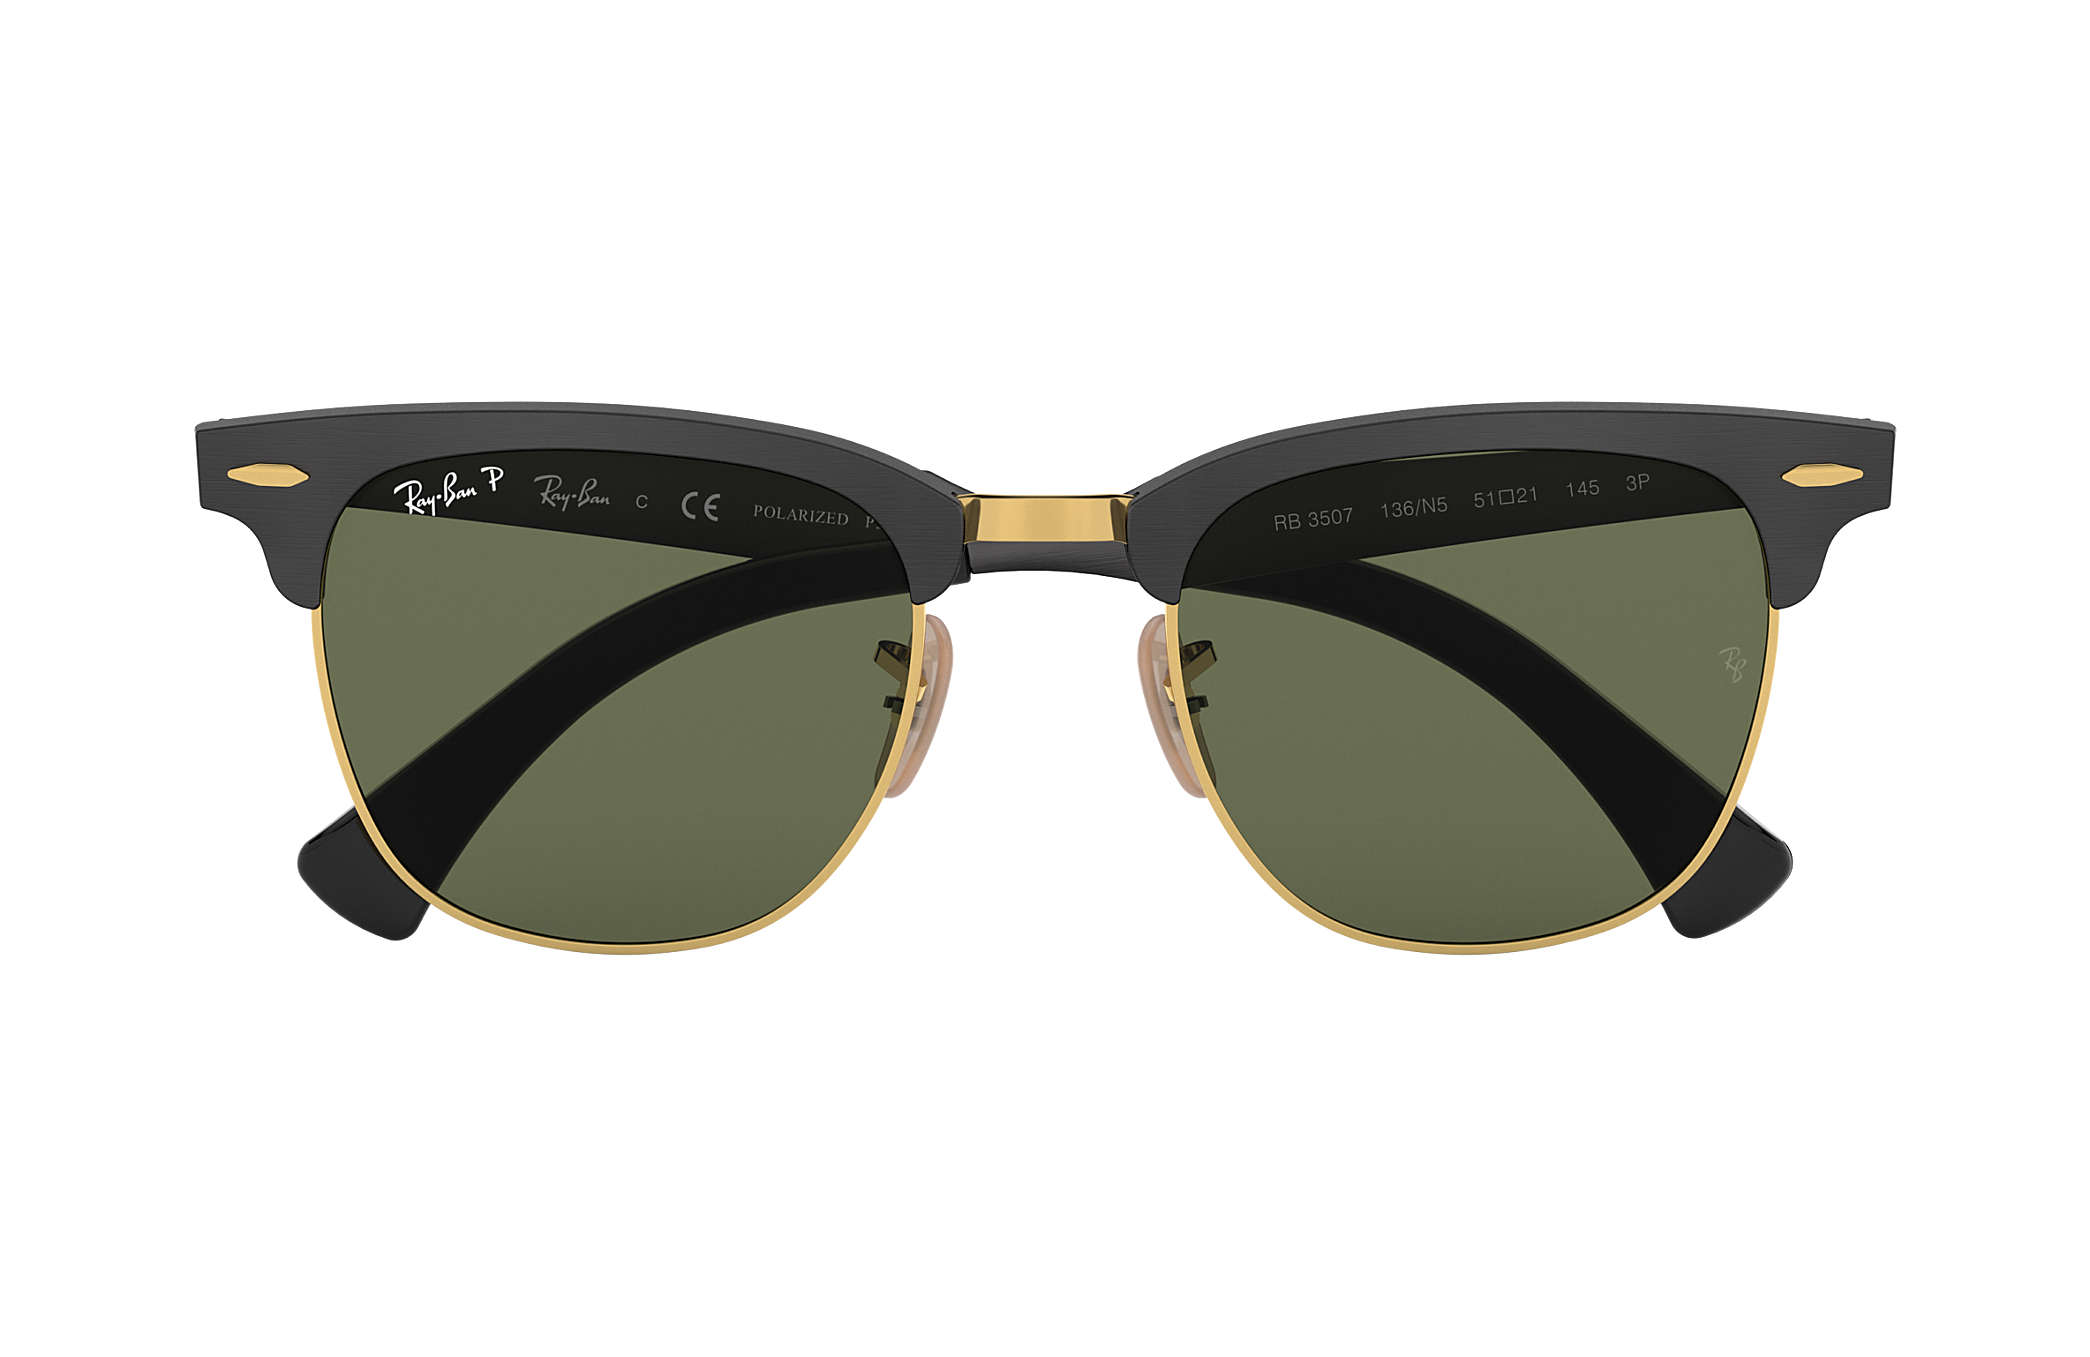 Ray ban sunglasses with price - Ray Ban 0rb3507 Clubmaster Aluminum Black Sun